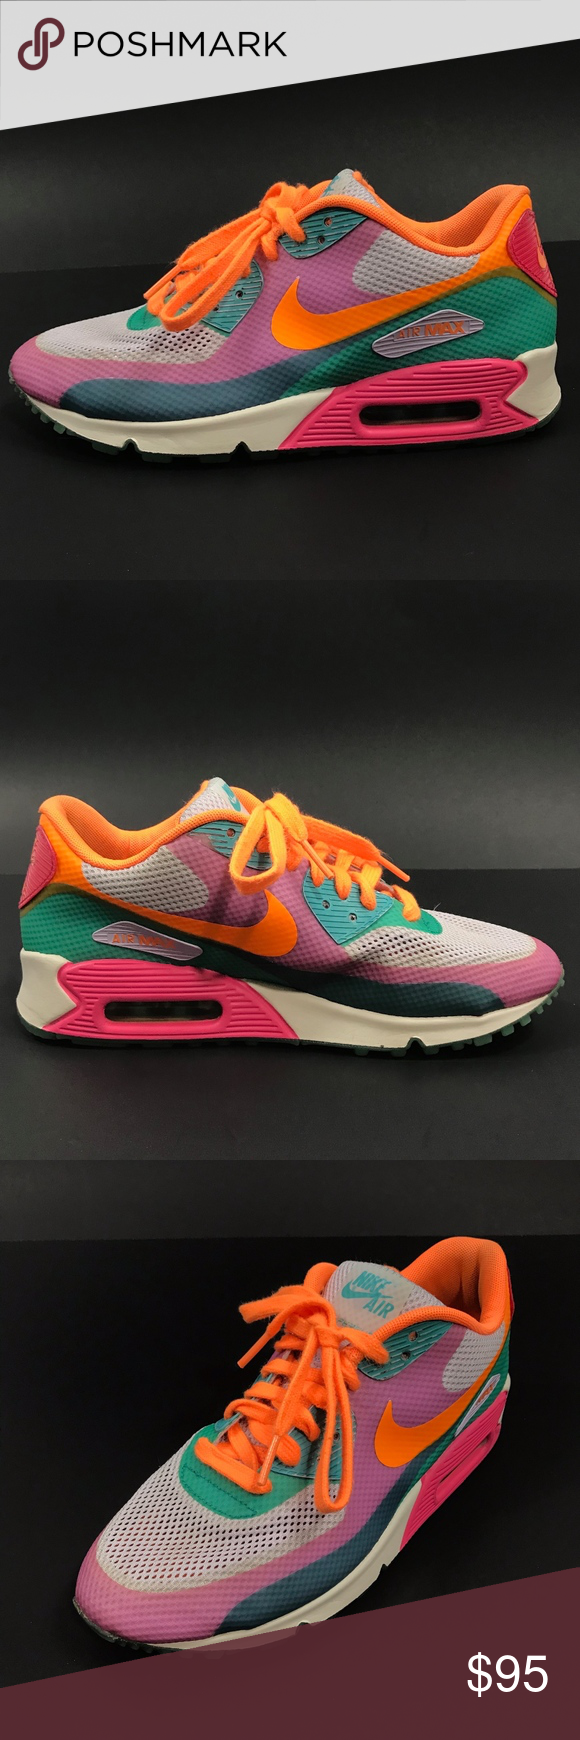 Nike Air Max 90 Hyperfuse Premium Running Shoes EUC Nike WMNS Air Max 90  Hyperfuse PRM d23e40ce28